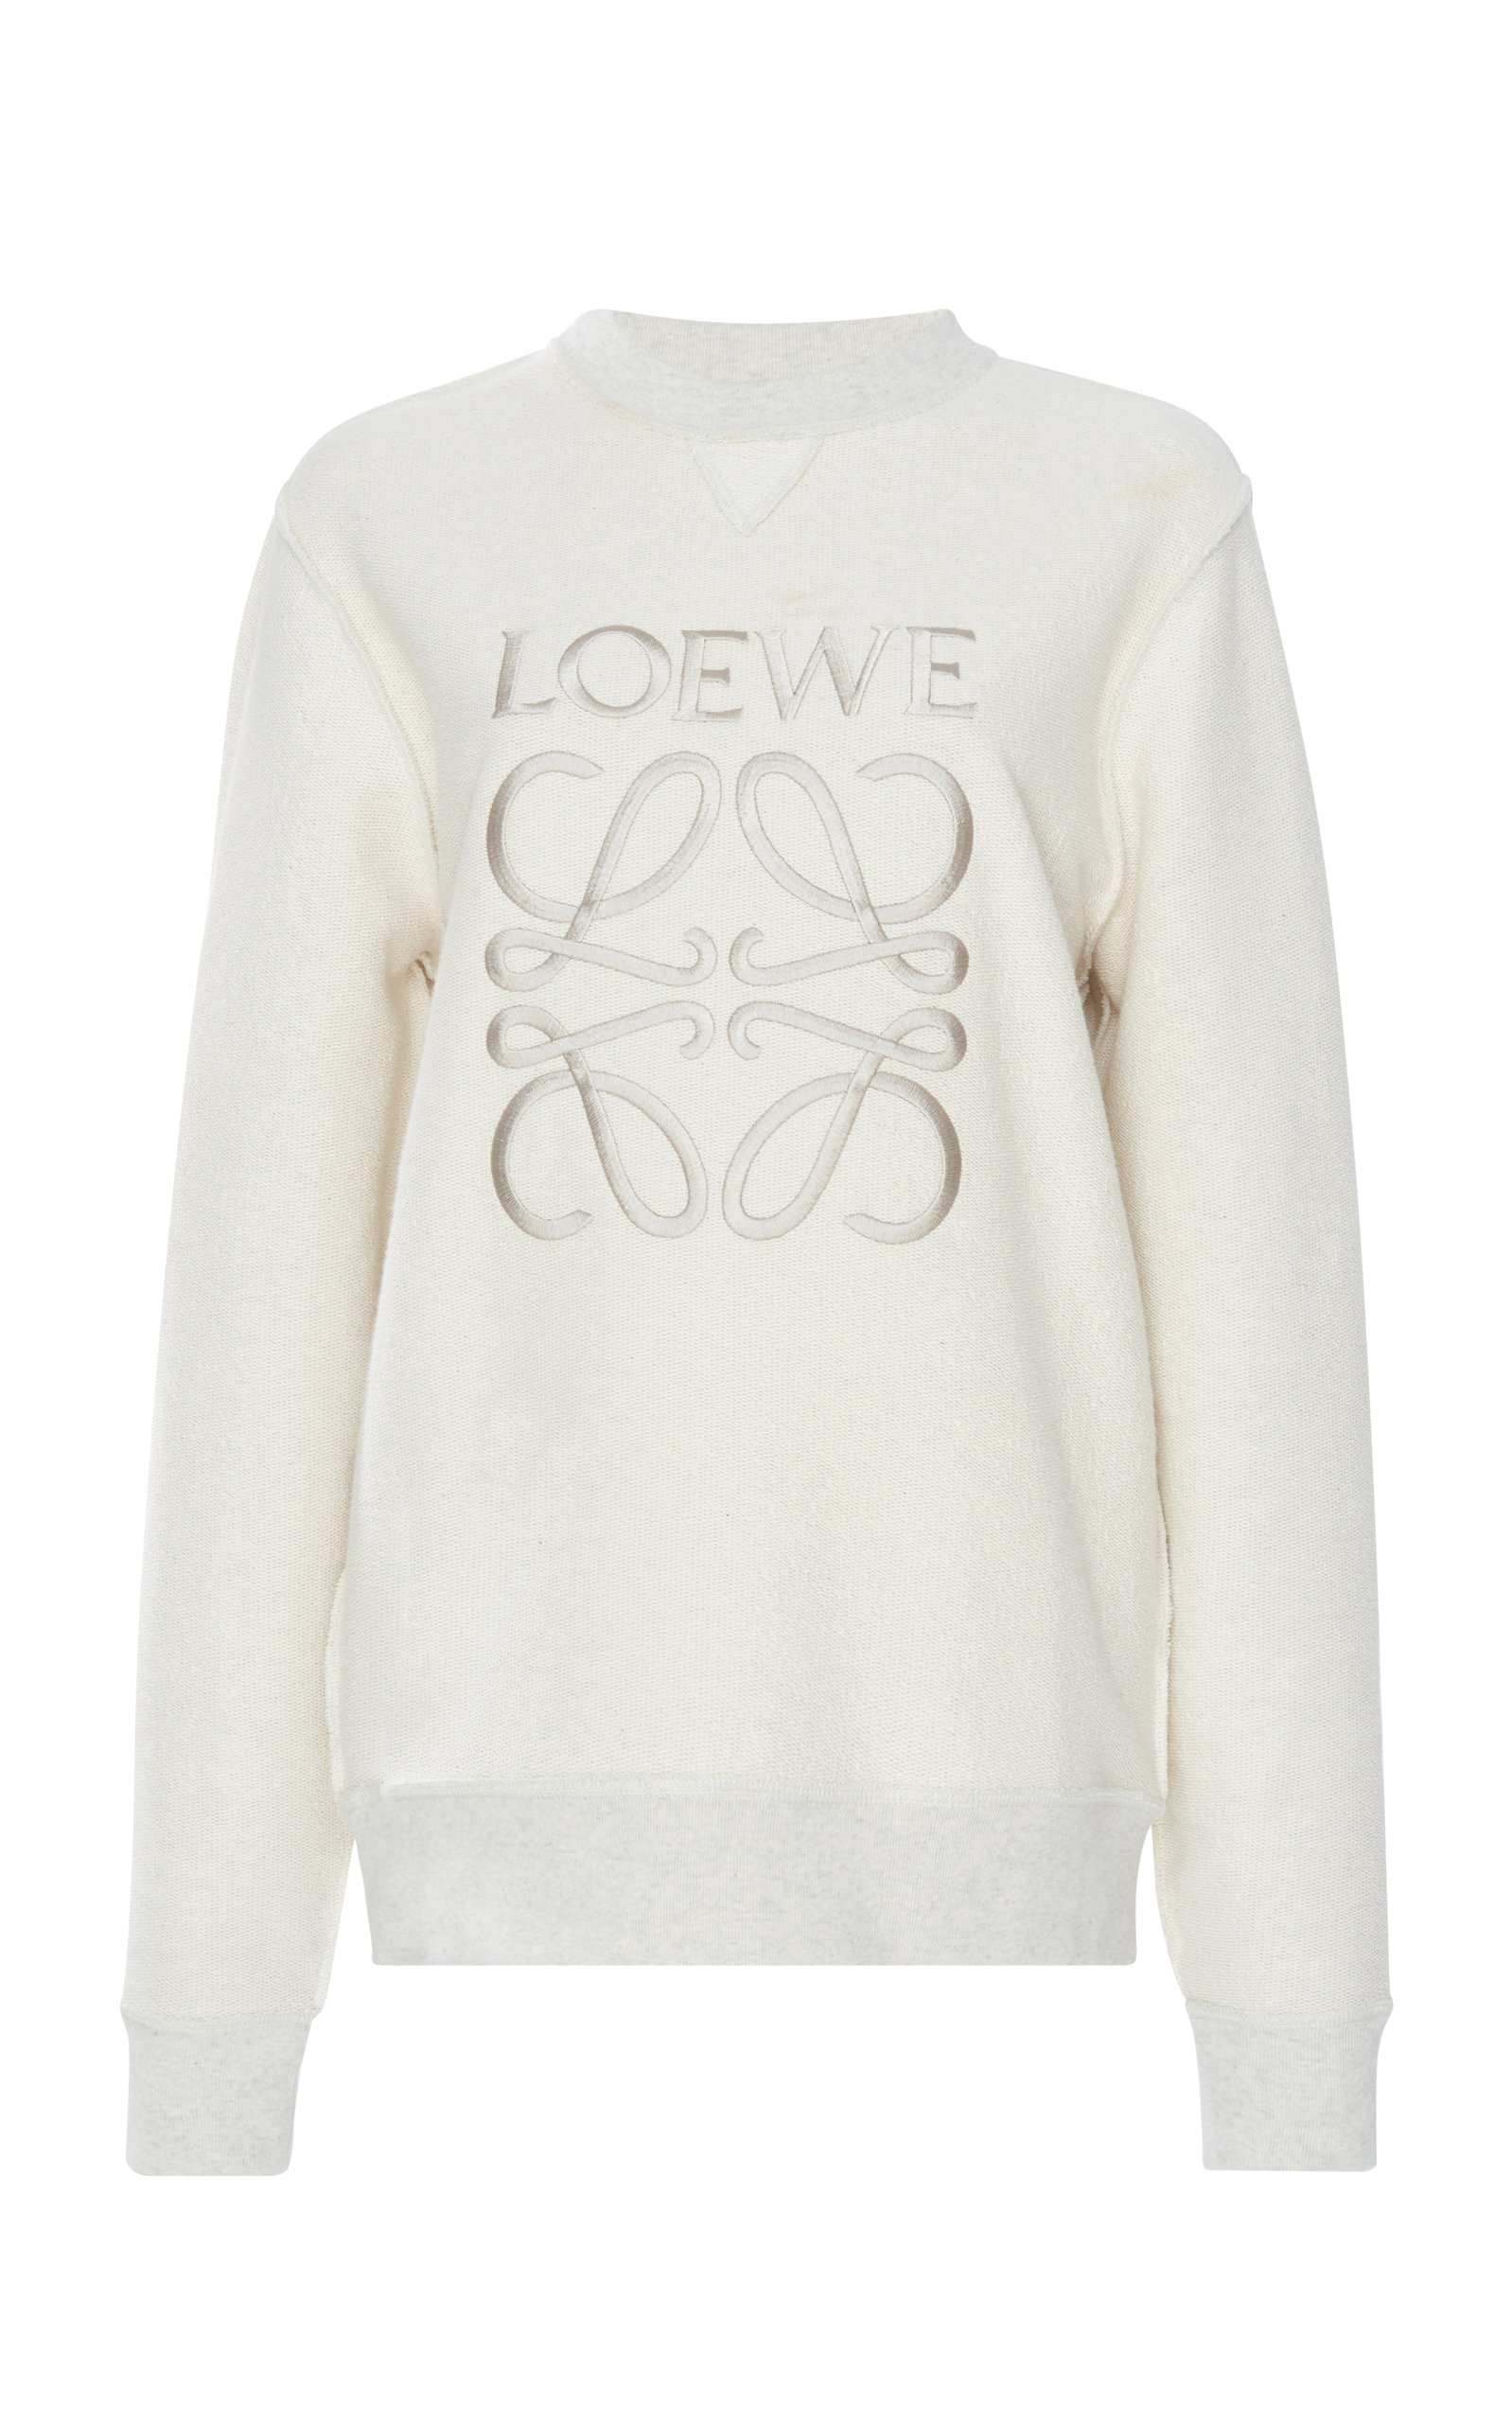 Loewe Shirts Embroidered Cotton-Terry Sweatshirt